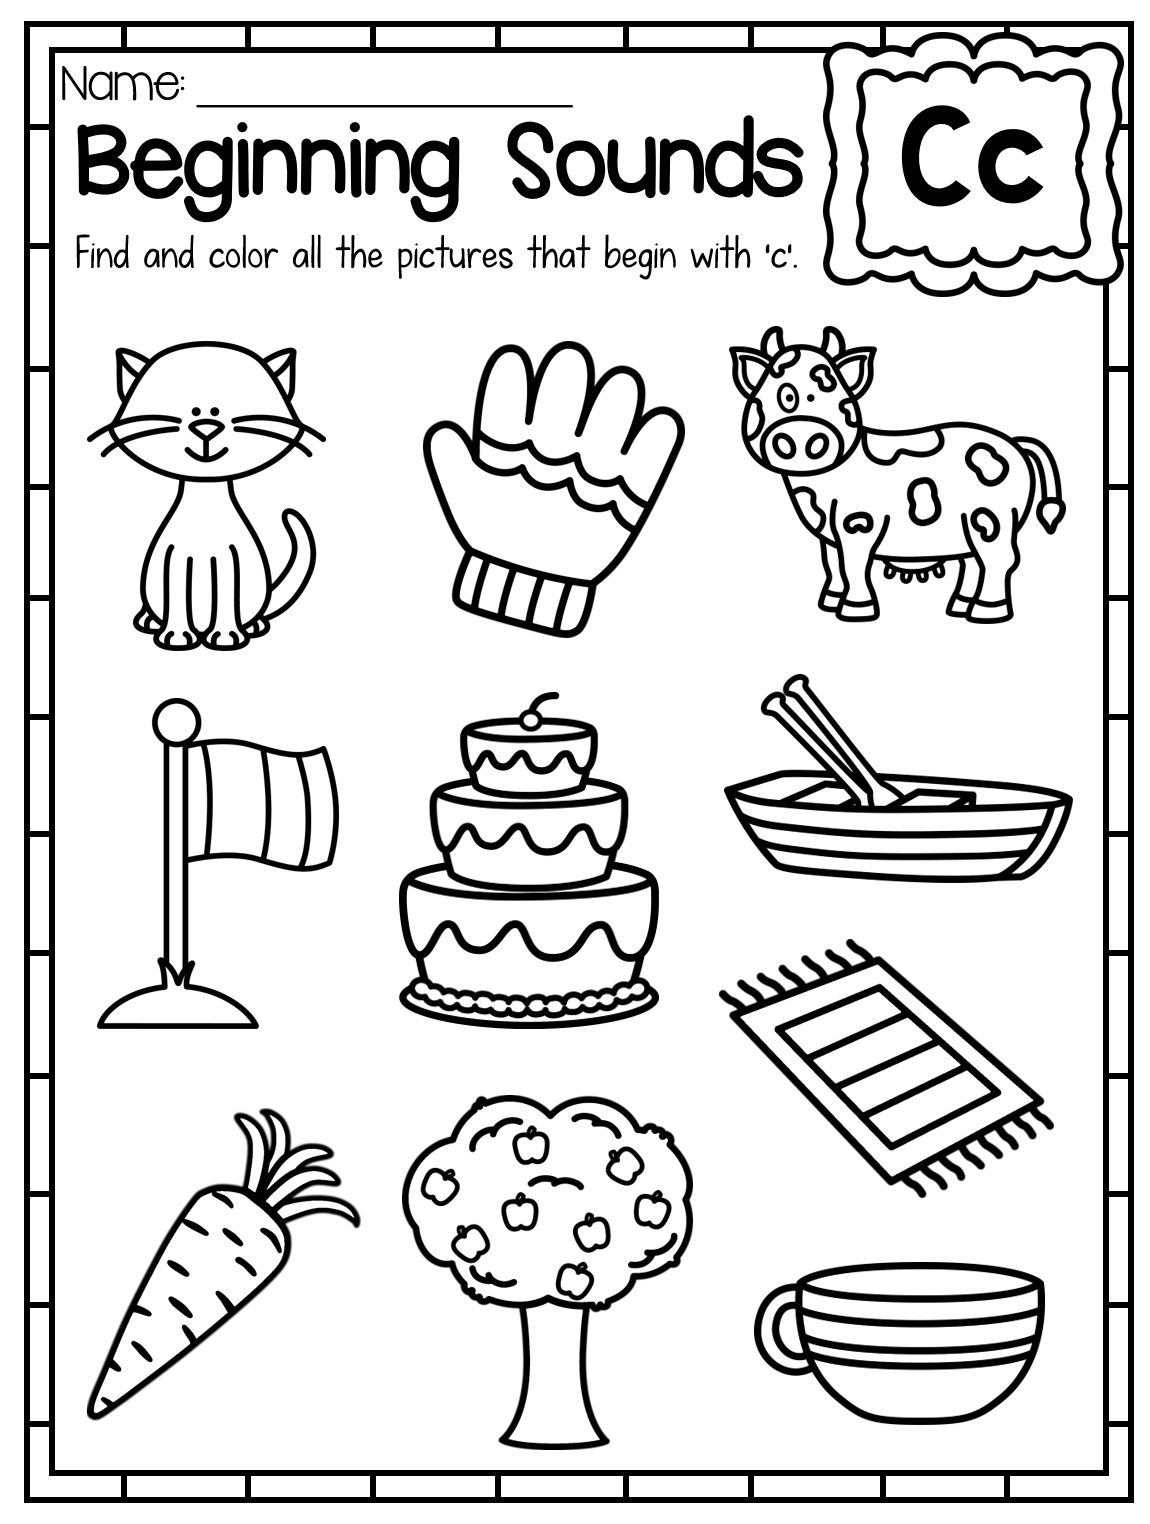 coloring letter c worksheets for kindergarten letter c coloring pages to download and print for free c coloring letter kindergarten for worksheets